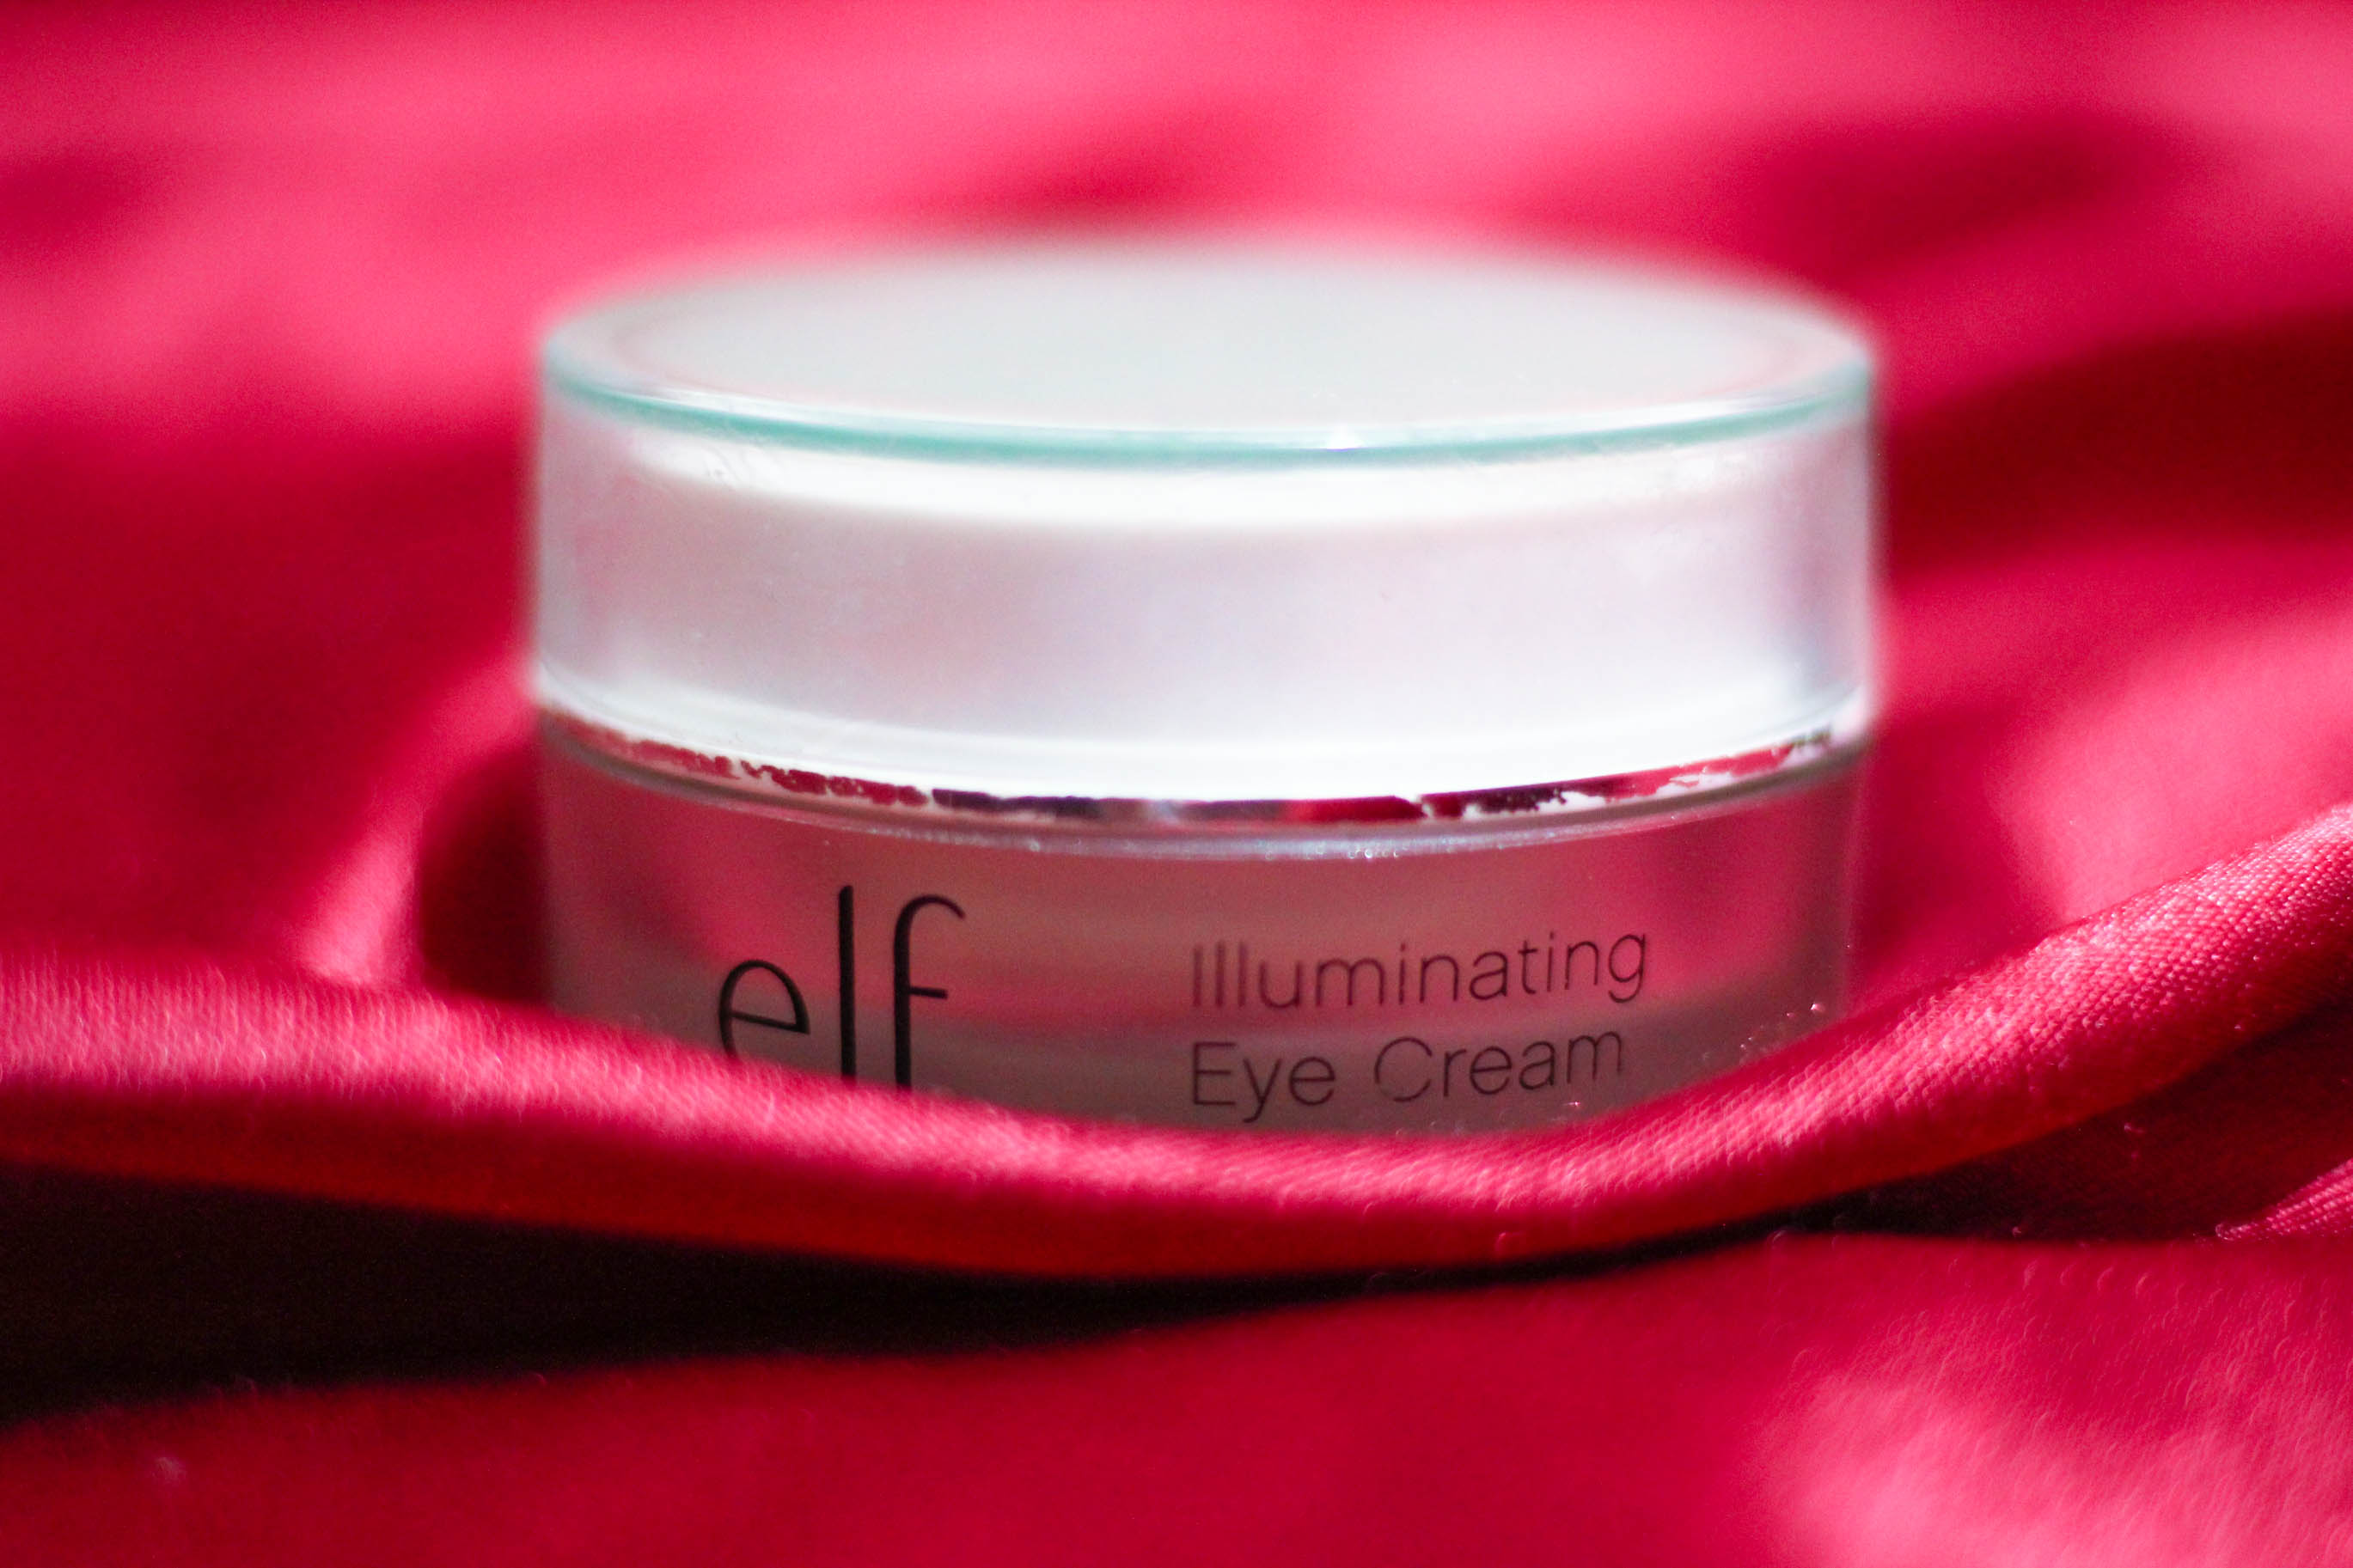 e.l.f. cosmetics Illuminating Eye Cream Review